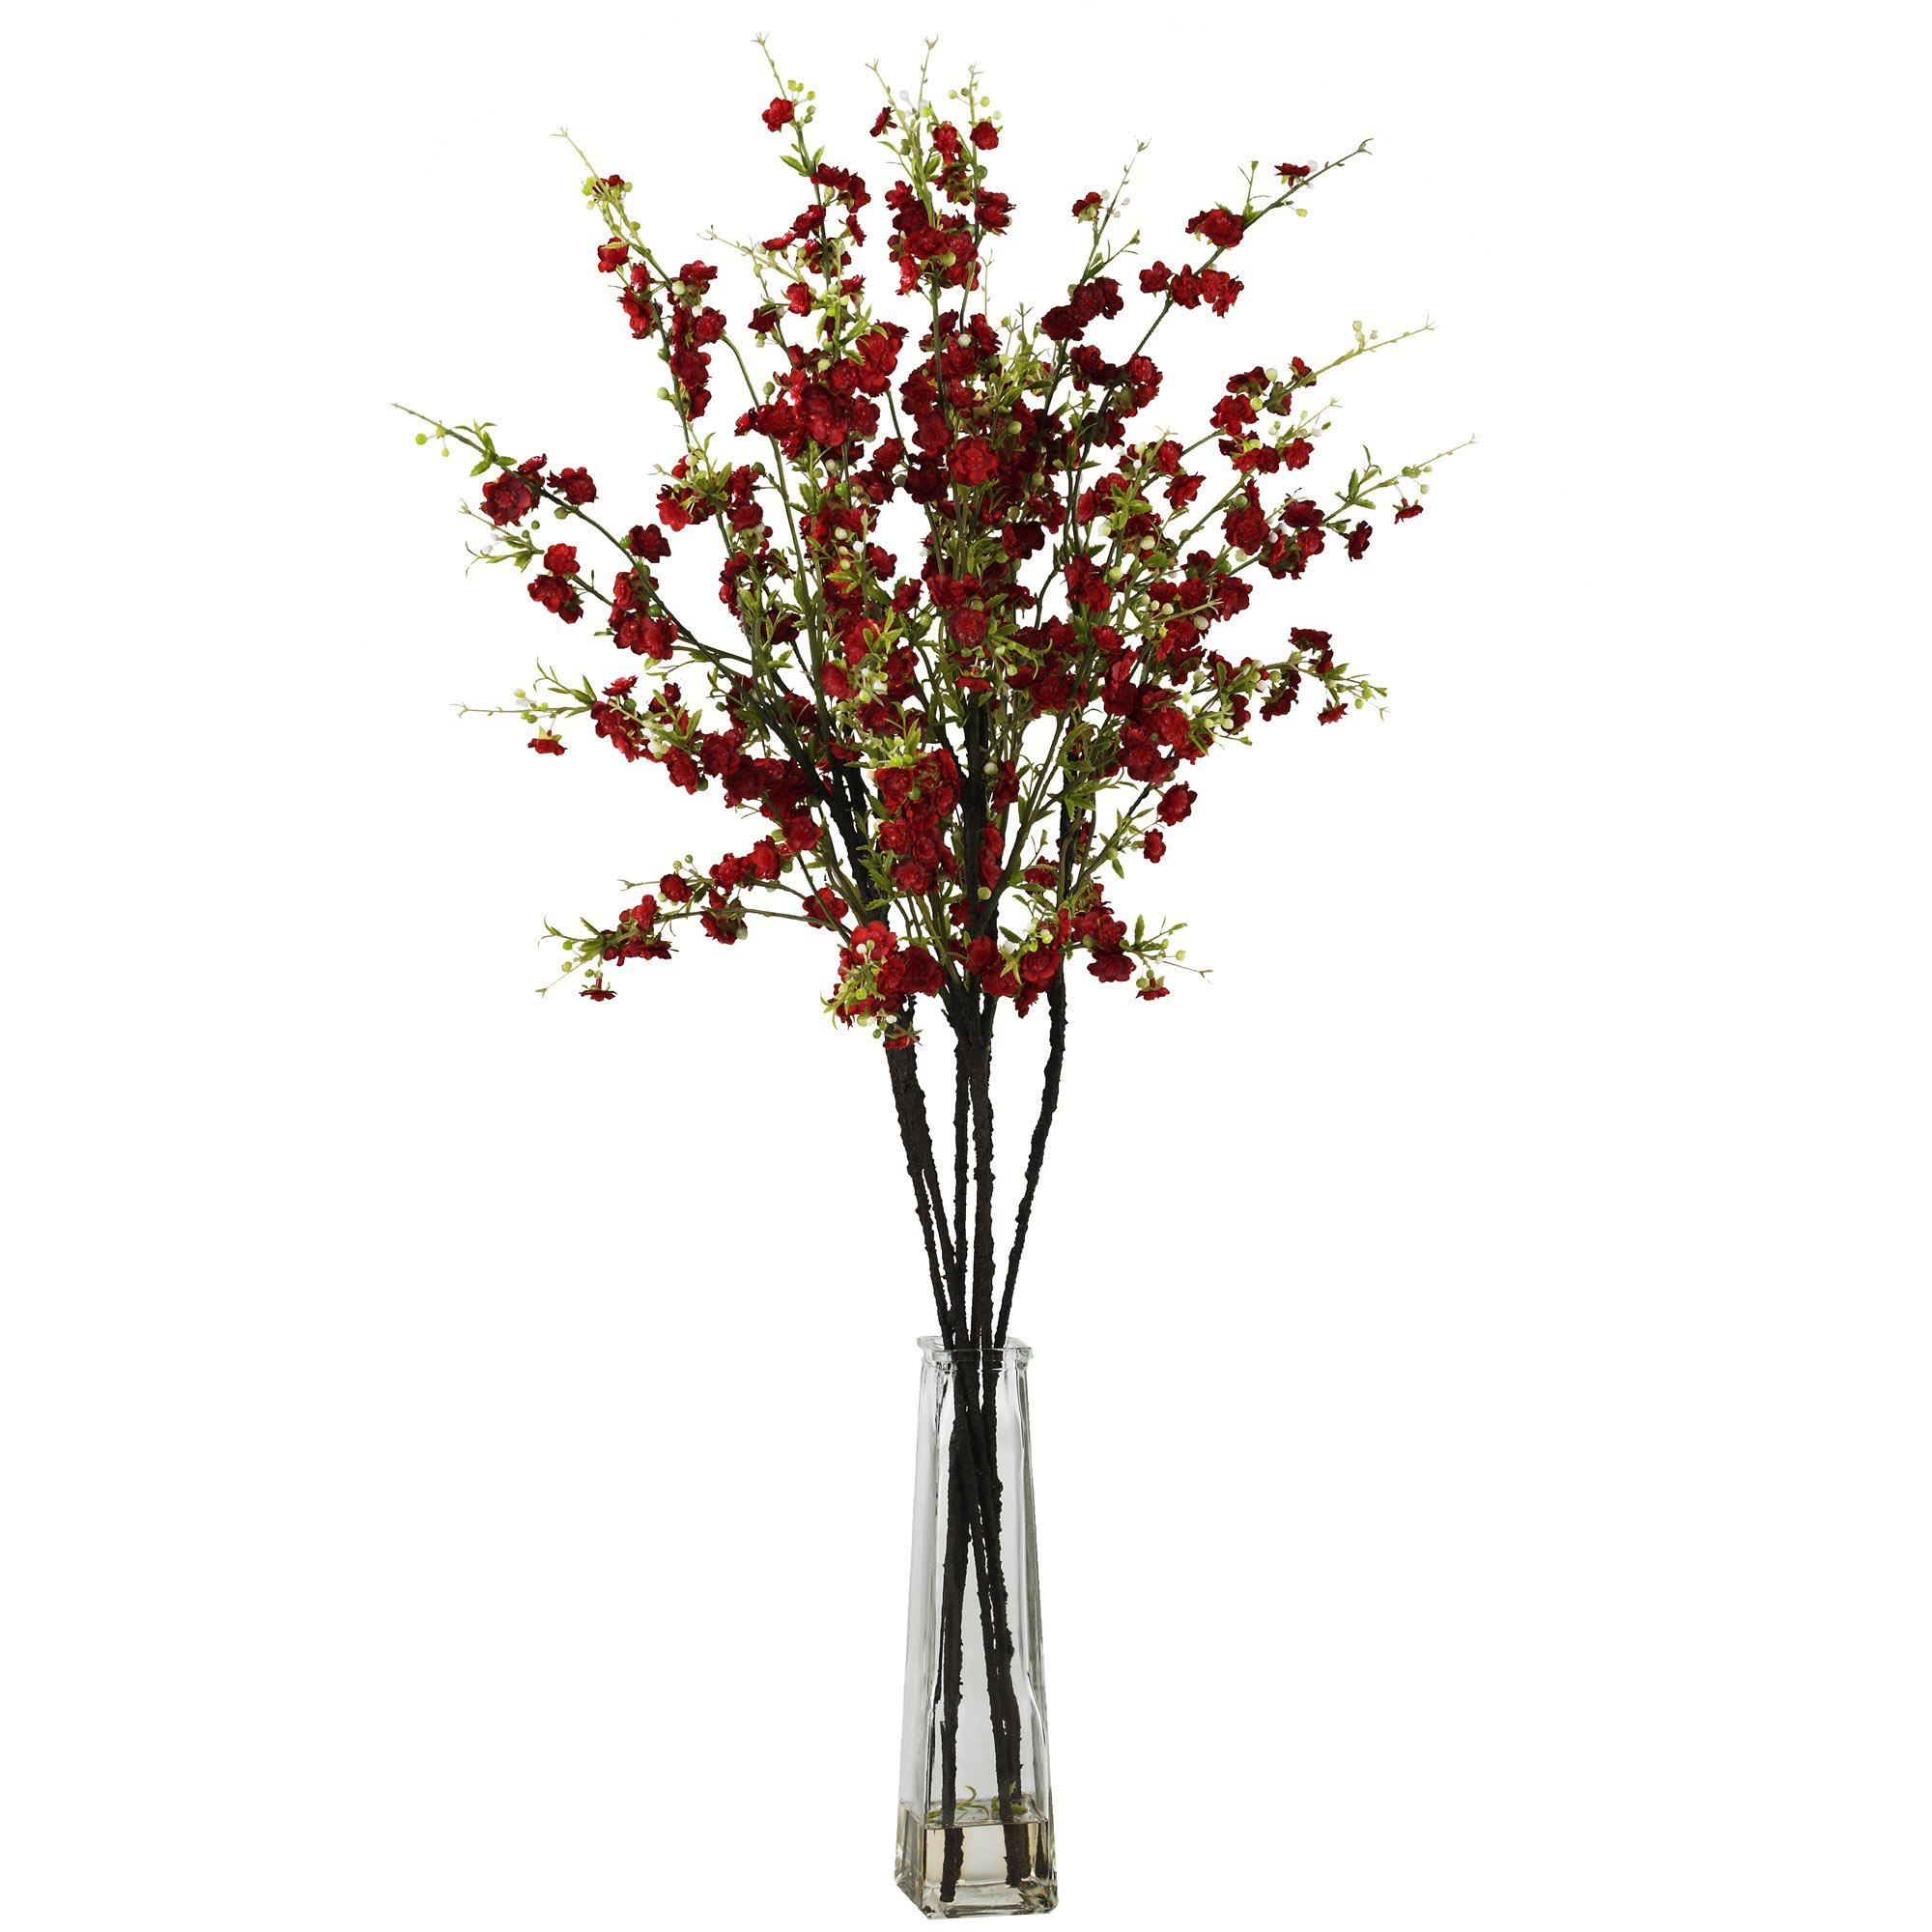 38 H Faux Red Cherry Blossoms In Vase Artificial Flower Arrangements Flower Vase Arrangements Artificial Flowers